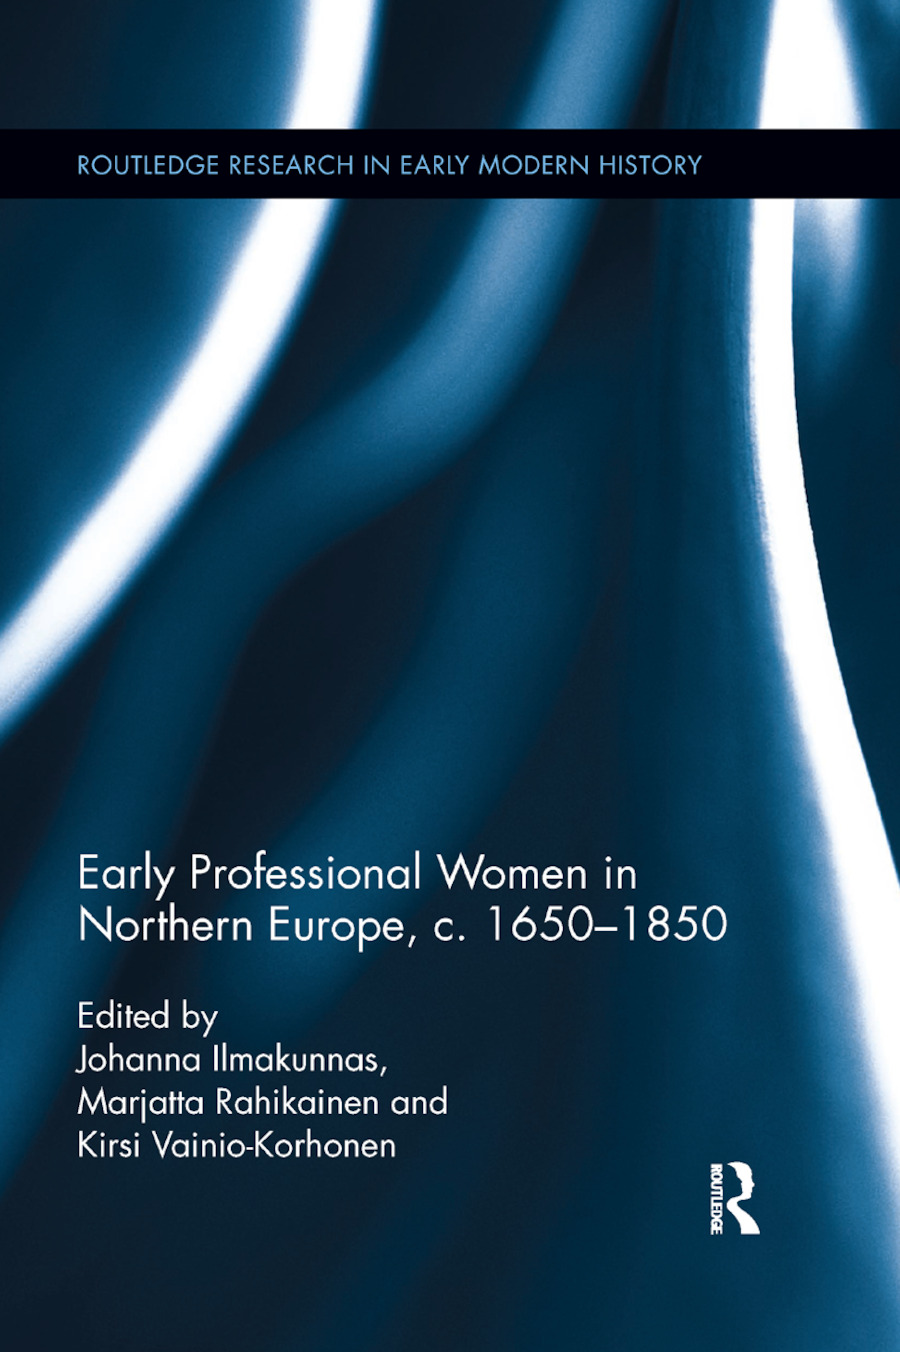 Early Professional Women in Northern Europe, c. 1650-1850